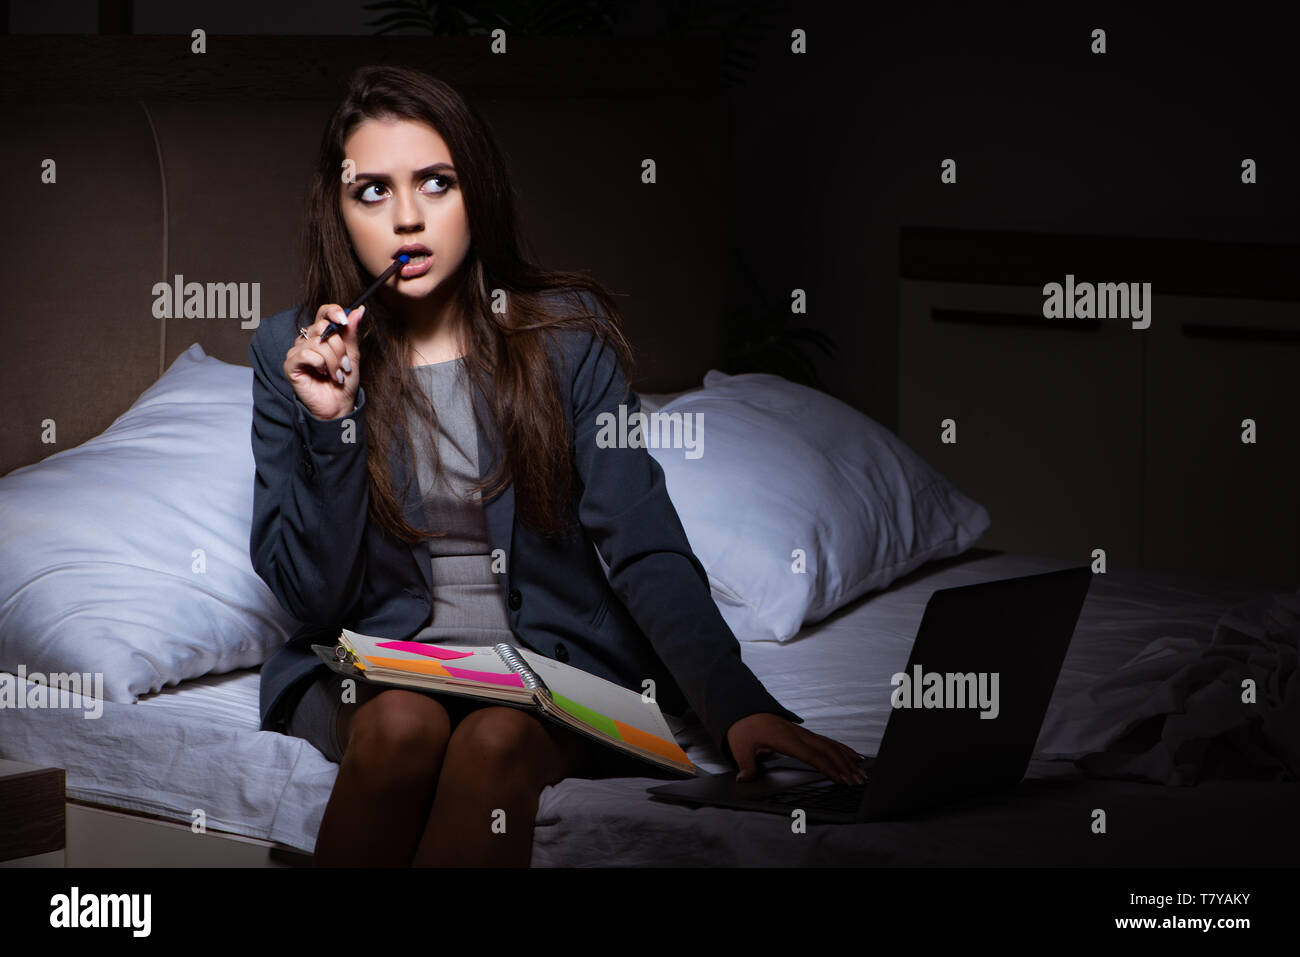 Tired businesswoman working overtime at home at night Stock Photo